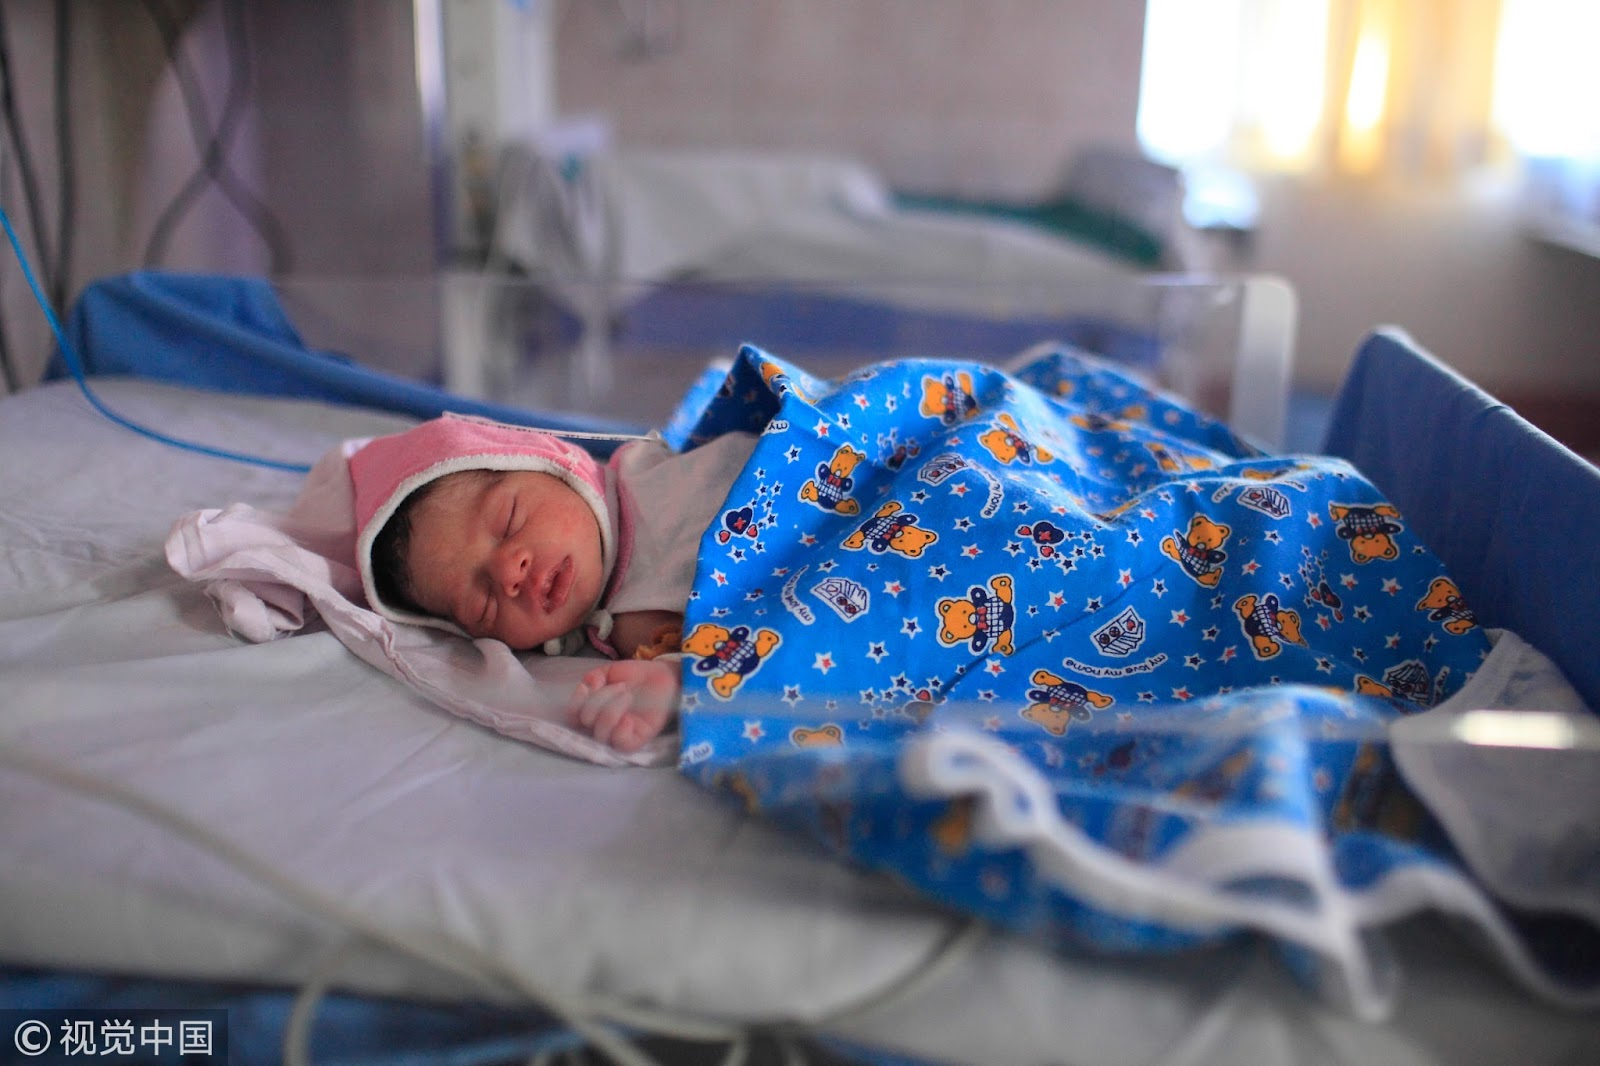 Newborn Indian Baby dies after fake doctor cuts off its genitals